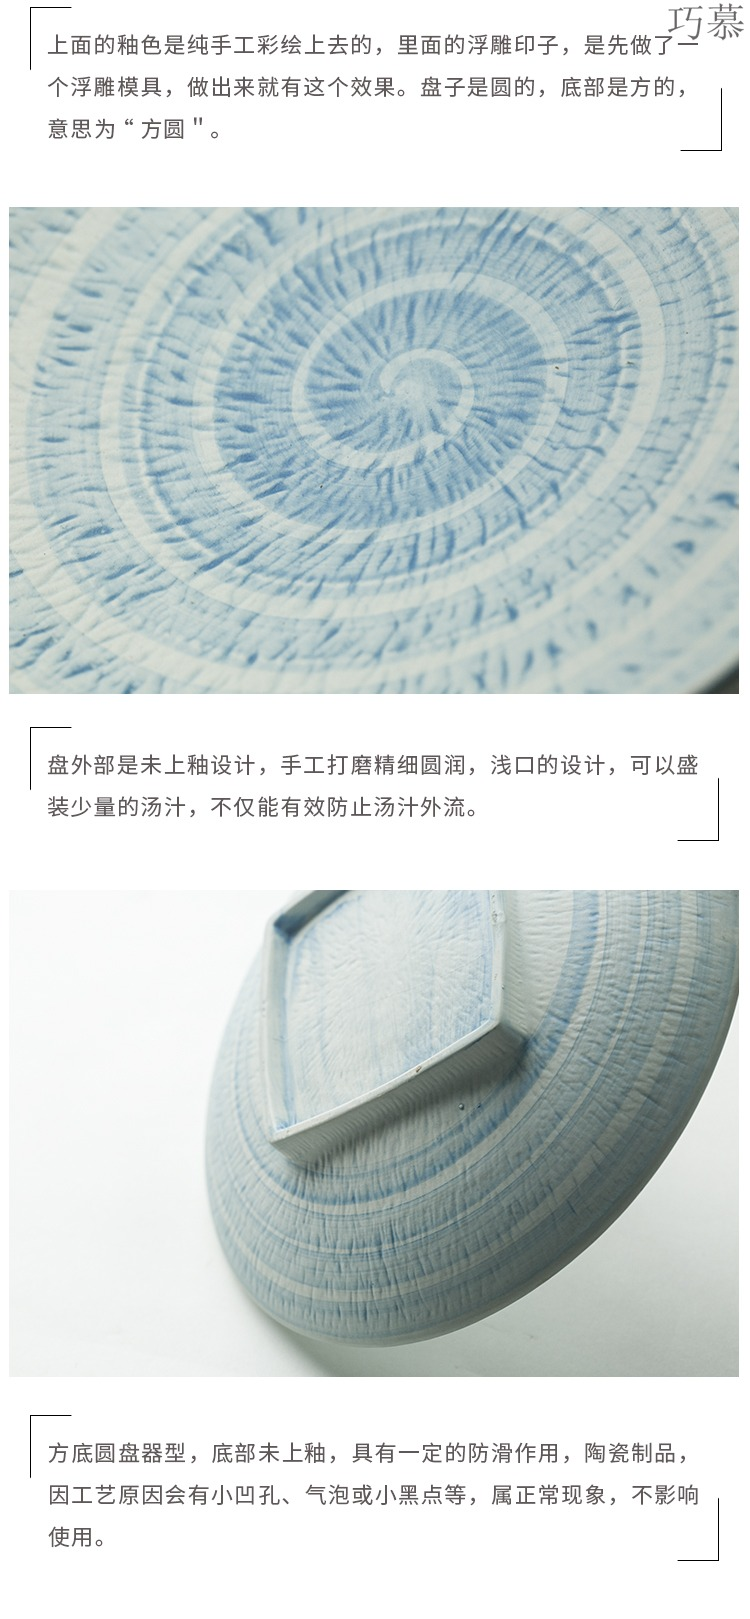 Qiao mu DY ceramic blue wave son rounded square chassis of kitchen utensils household food dish plate western food steak dish plates